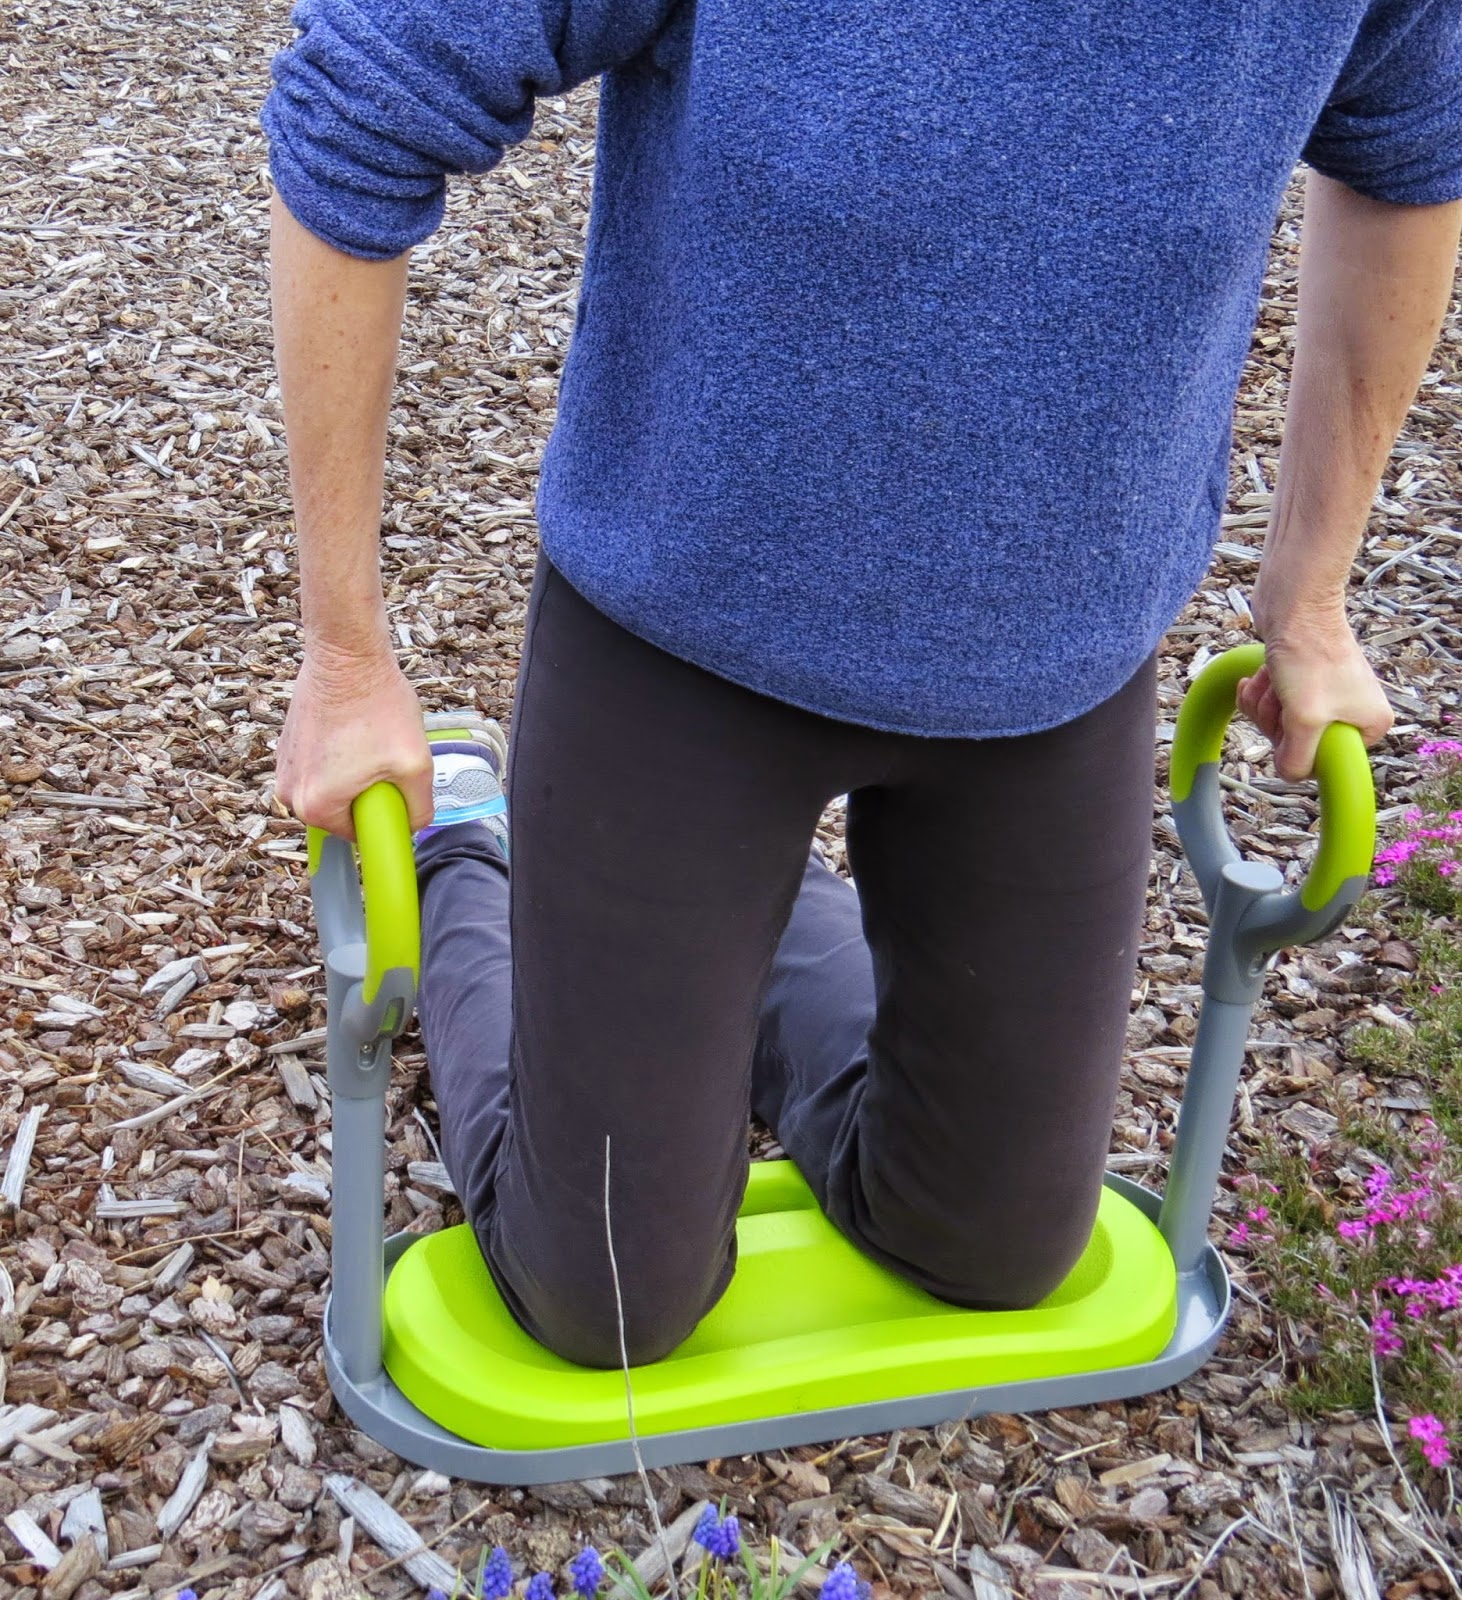 Review gardenease garden kneeler susan 39 s in the garden for Gardening kneeling stool